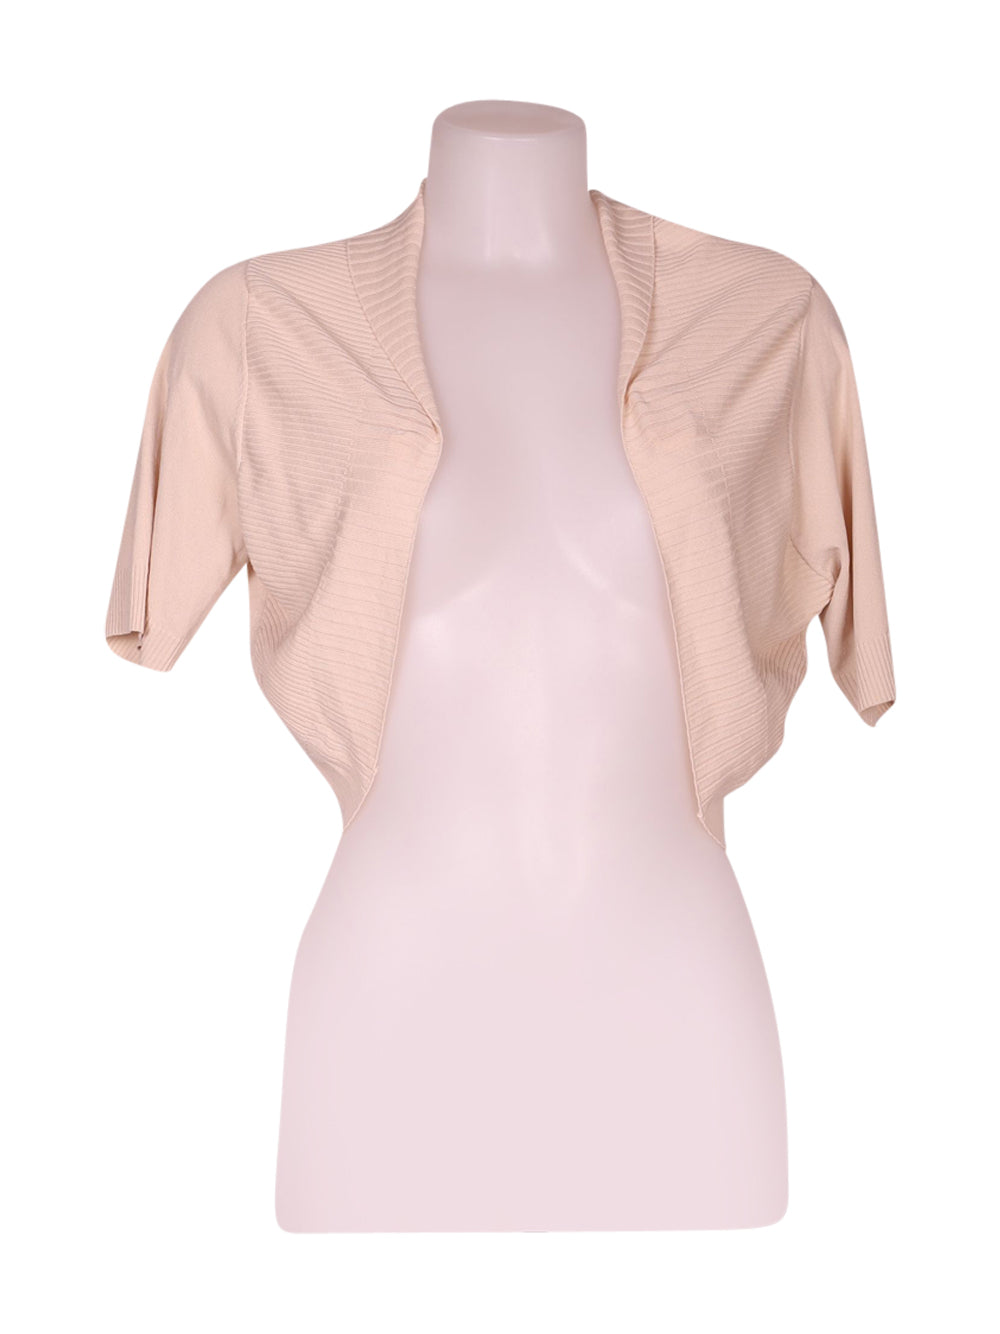 Front photo of Preloved annes nicole Beige Woman's bolero - size 12/L